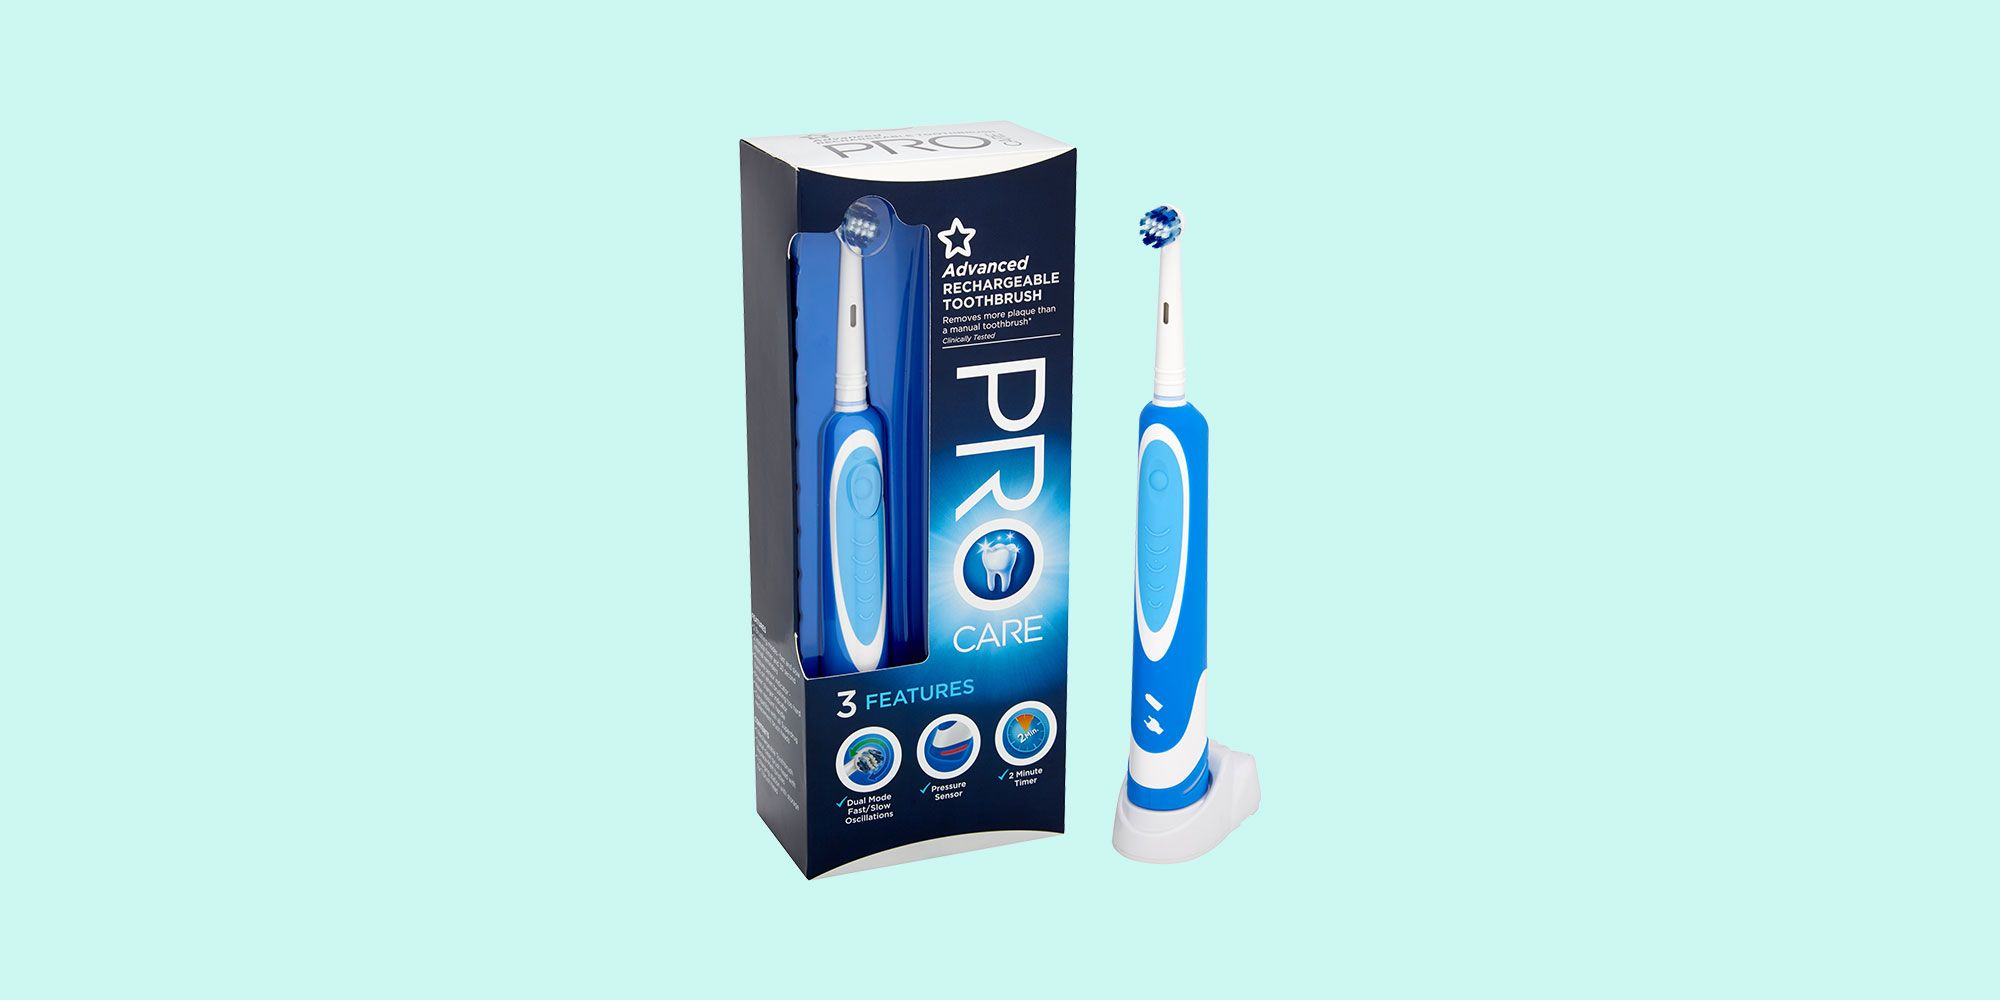 Superdrug Advanced Rechargeable Toothbrush Review